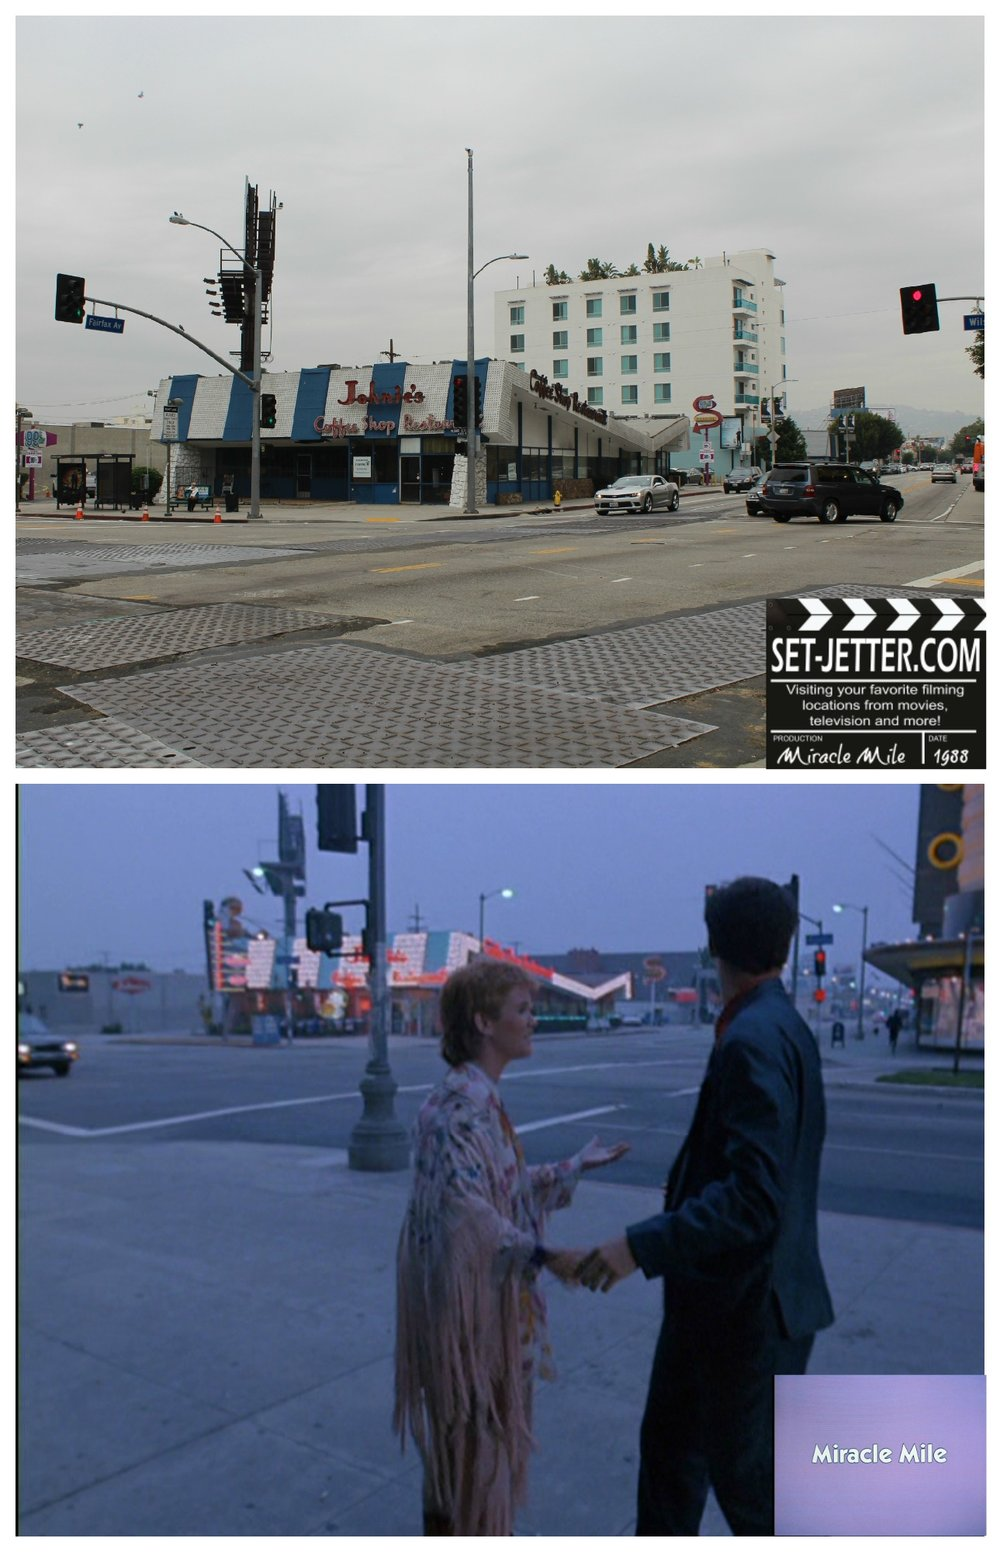 Miracle Mile comparison 17.jpg